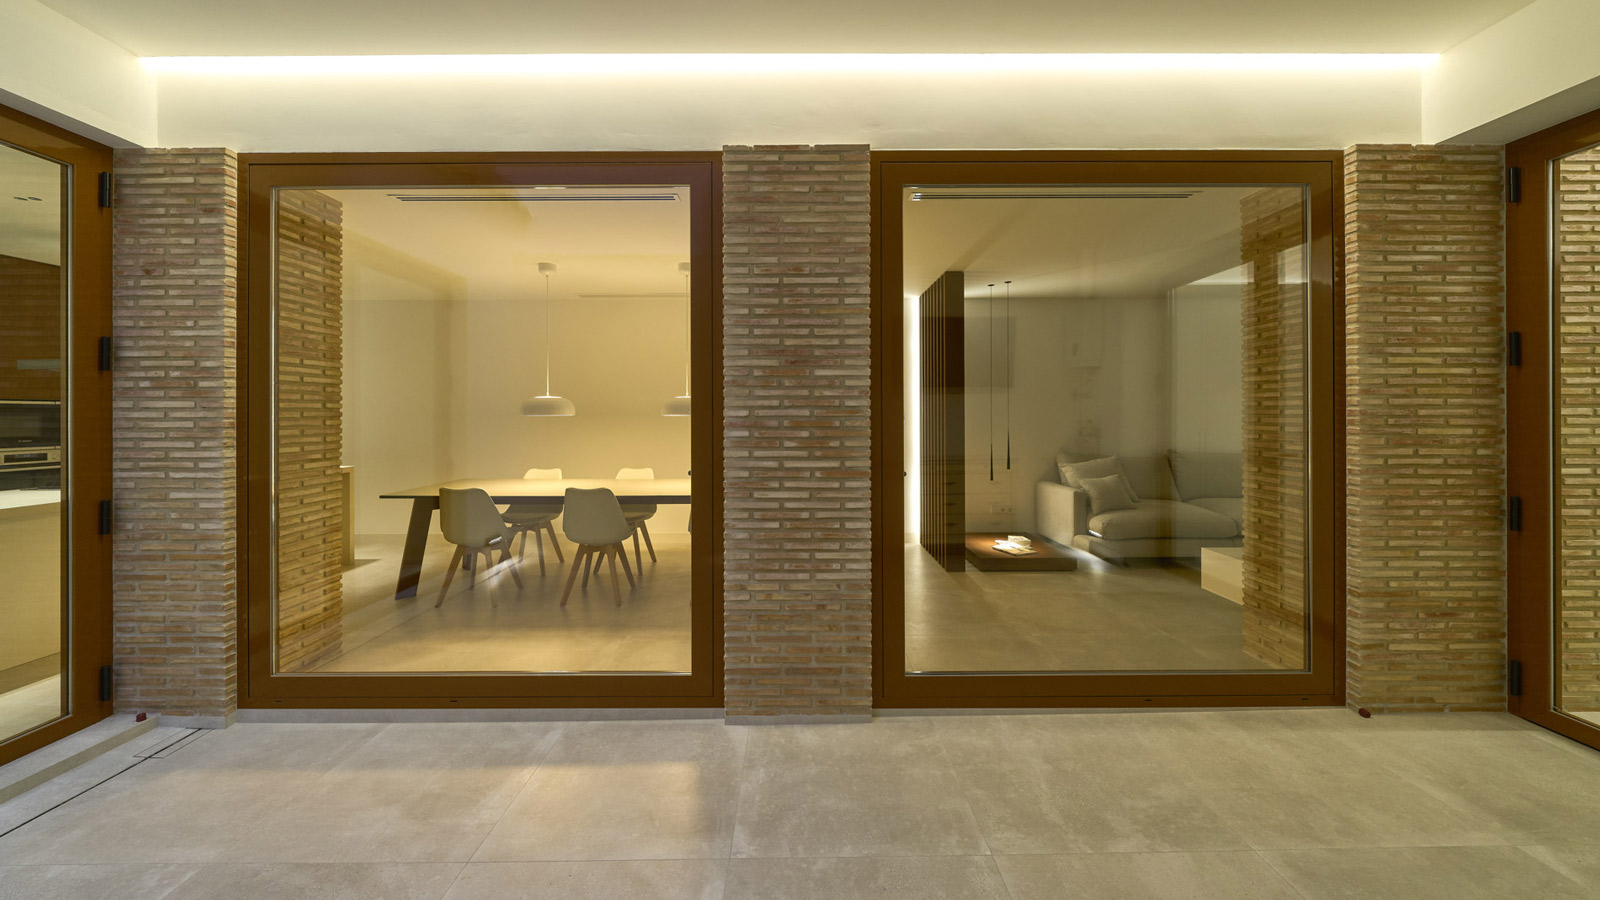 PORCELANOSA Grupo Projects: Vivienda PM, a house that seamlessly combines traditional and minimalist styles